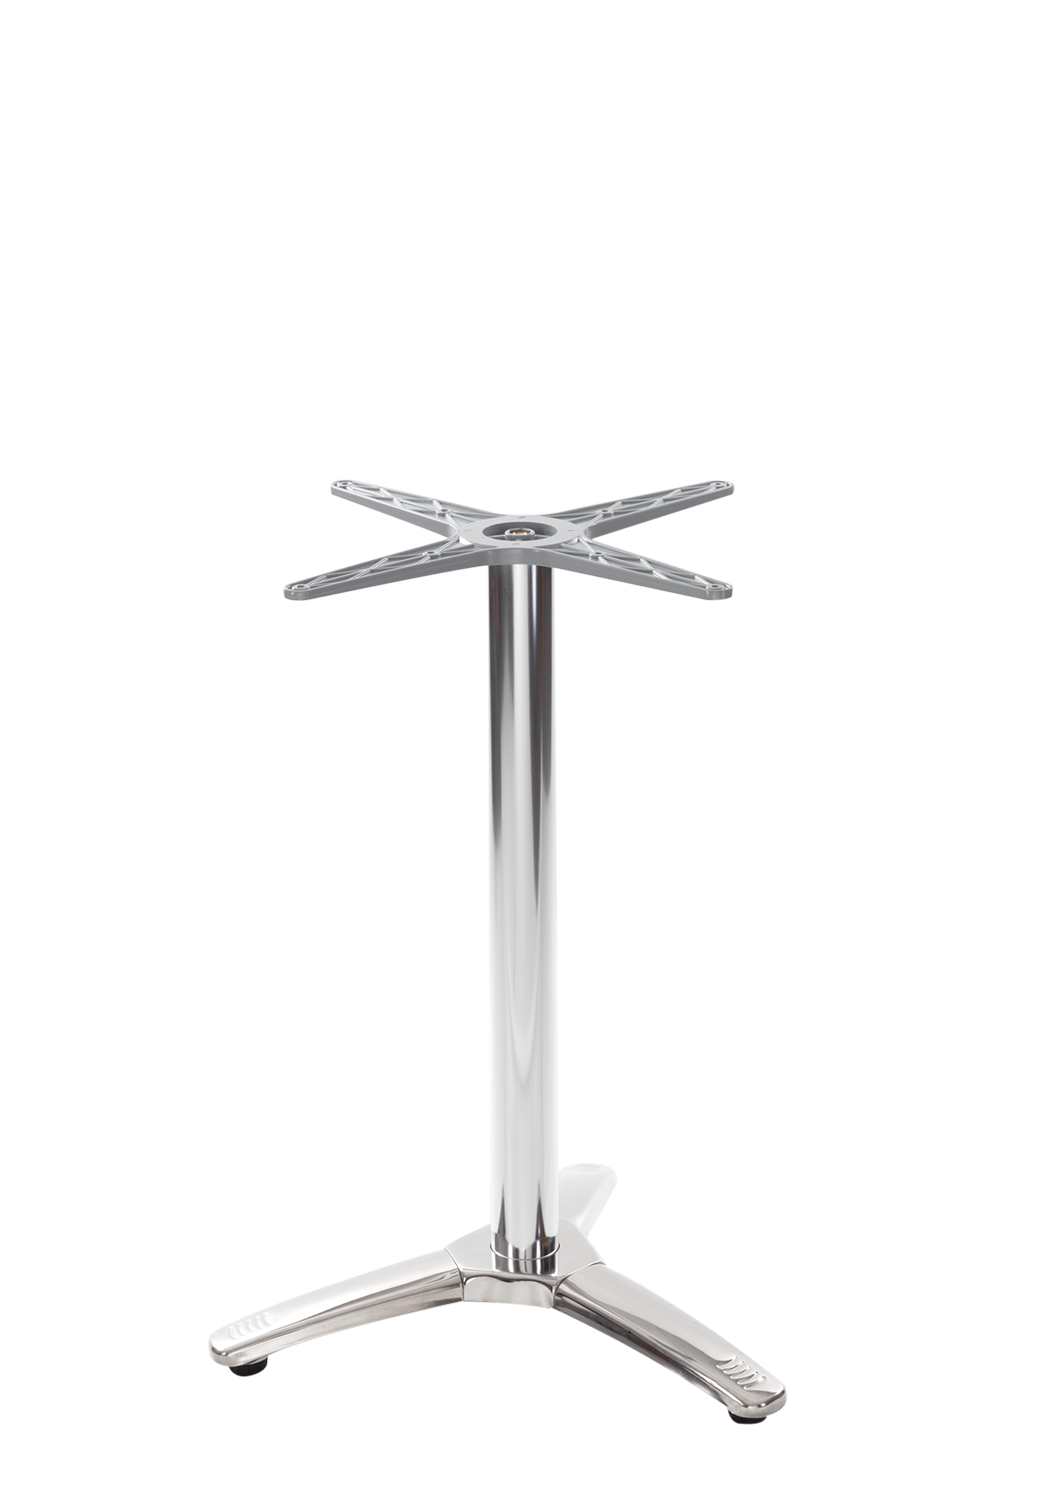 Aluminium all weather table base - 3 leg - Dining Height - 730 mm [Max table top size for this base 600mm ROUND]